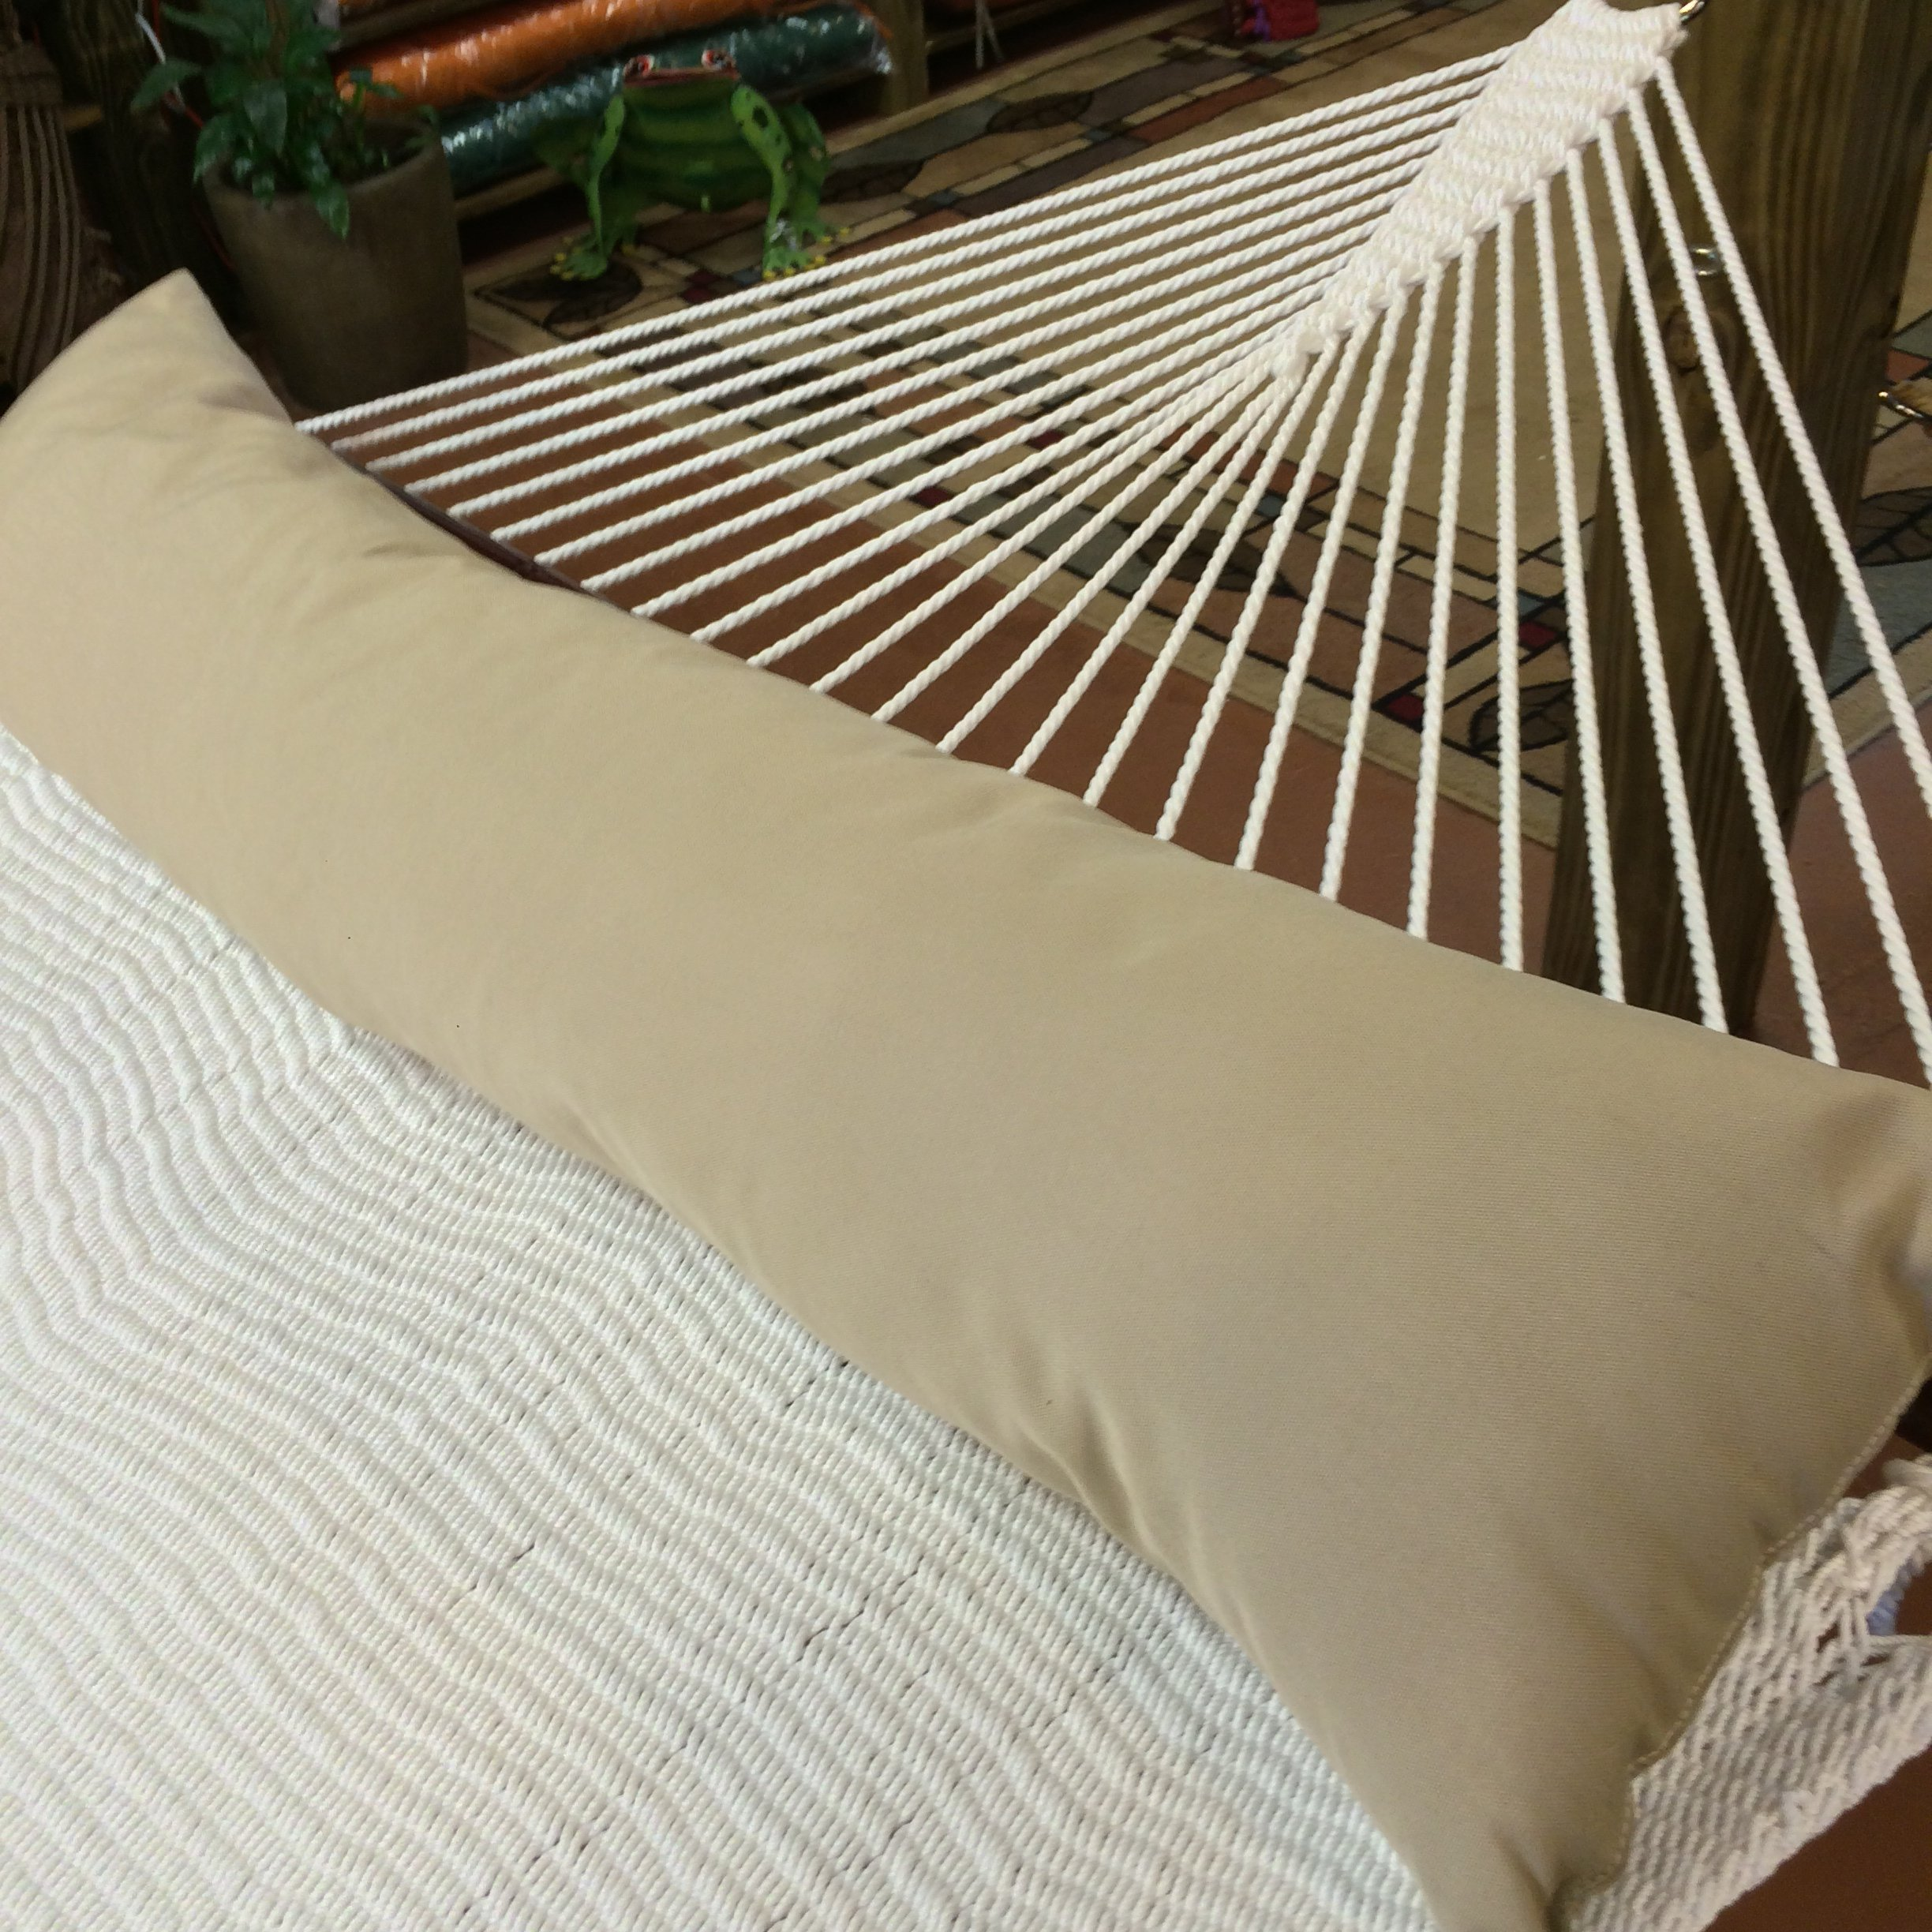 Caribbean Hammocks Double Hammock Pillow, Antique Beige by Caribbean Hammocks (Image #4)